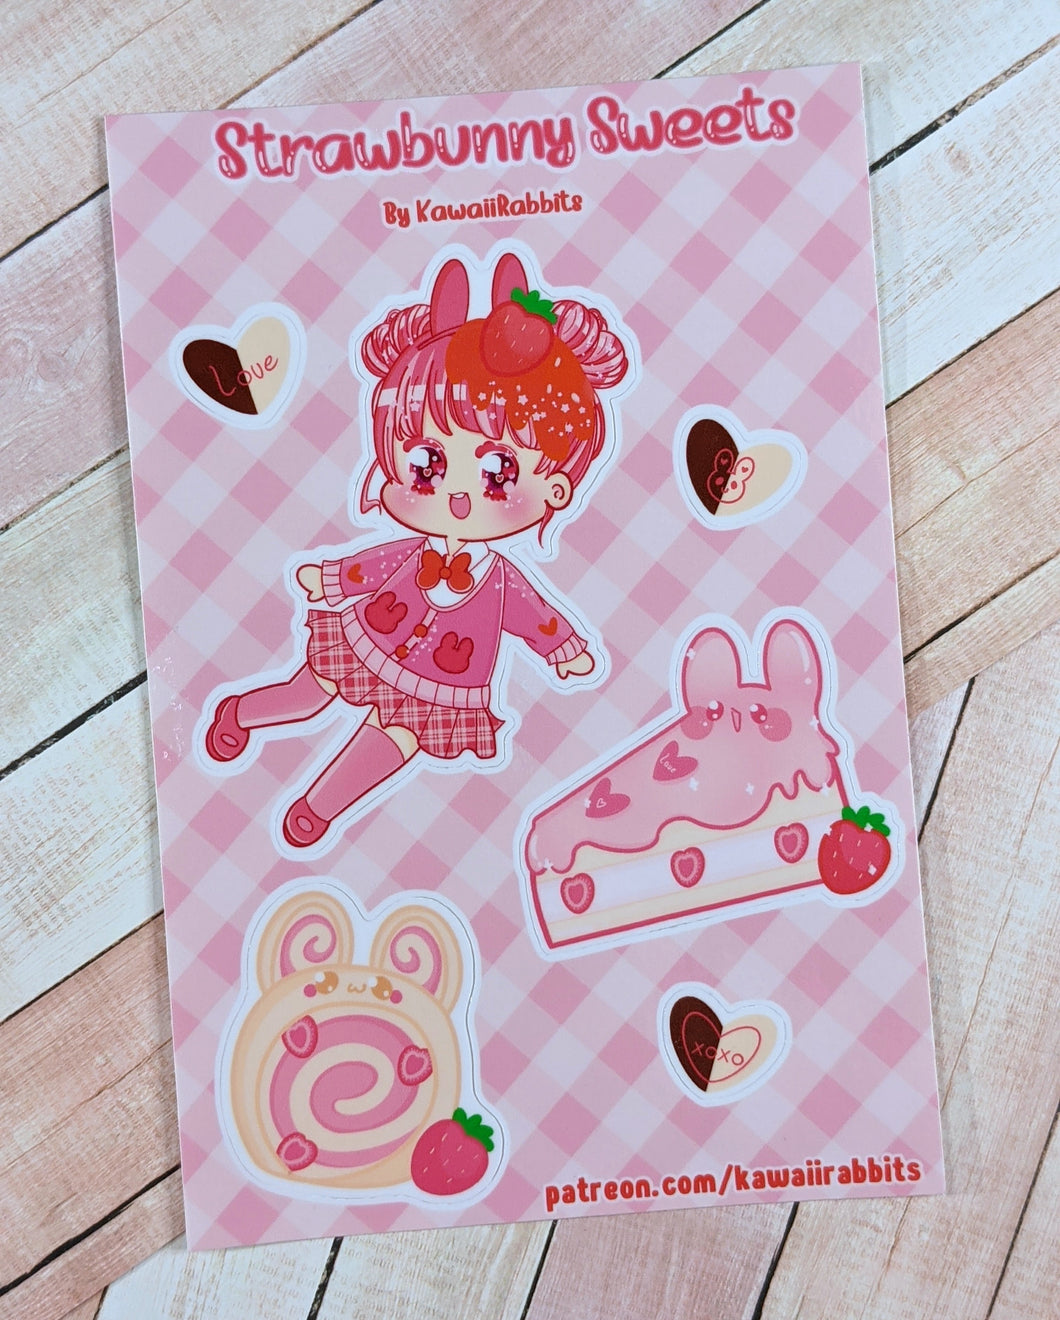 Strawbunny Sweets 4x6 Sticker Sheet (Patreon Exclusive)